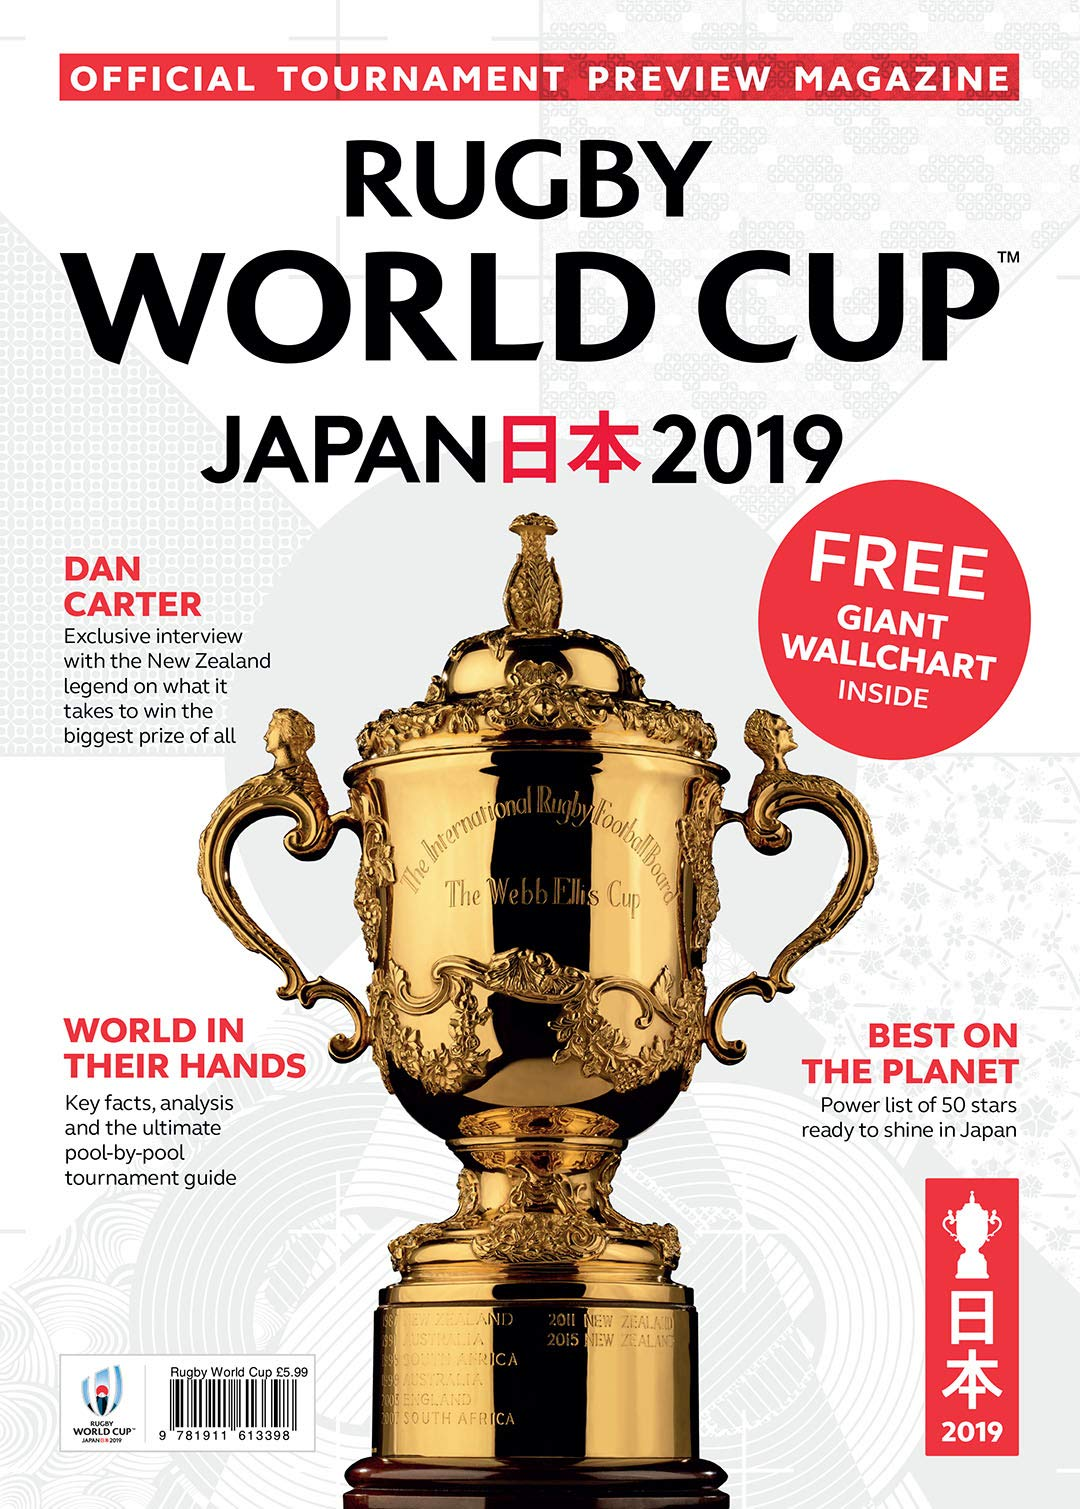 Rugby World Cup 2019 Official Tournament Preview Magazine Rugby World Cup 9781911613398 Amazon Com Books